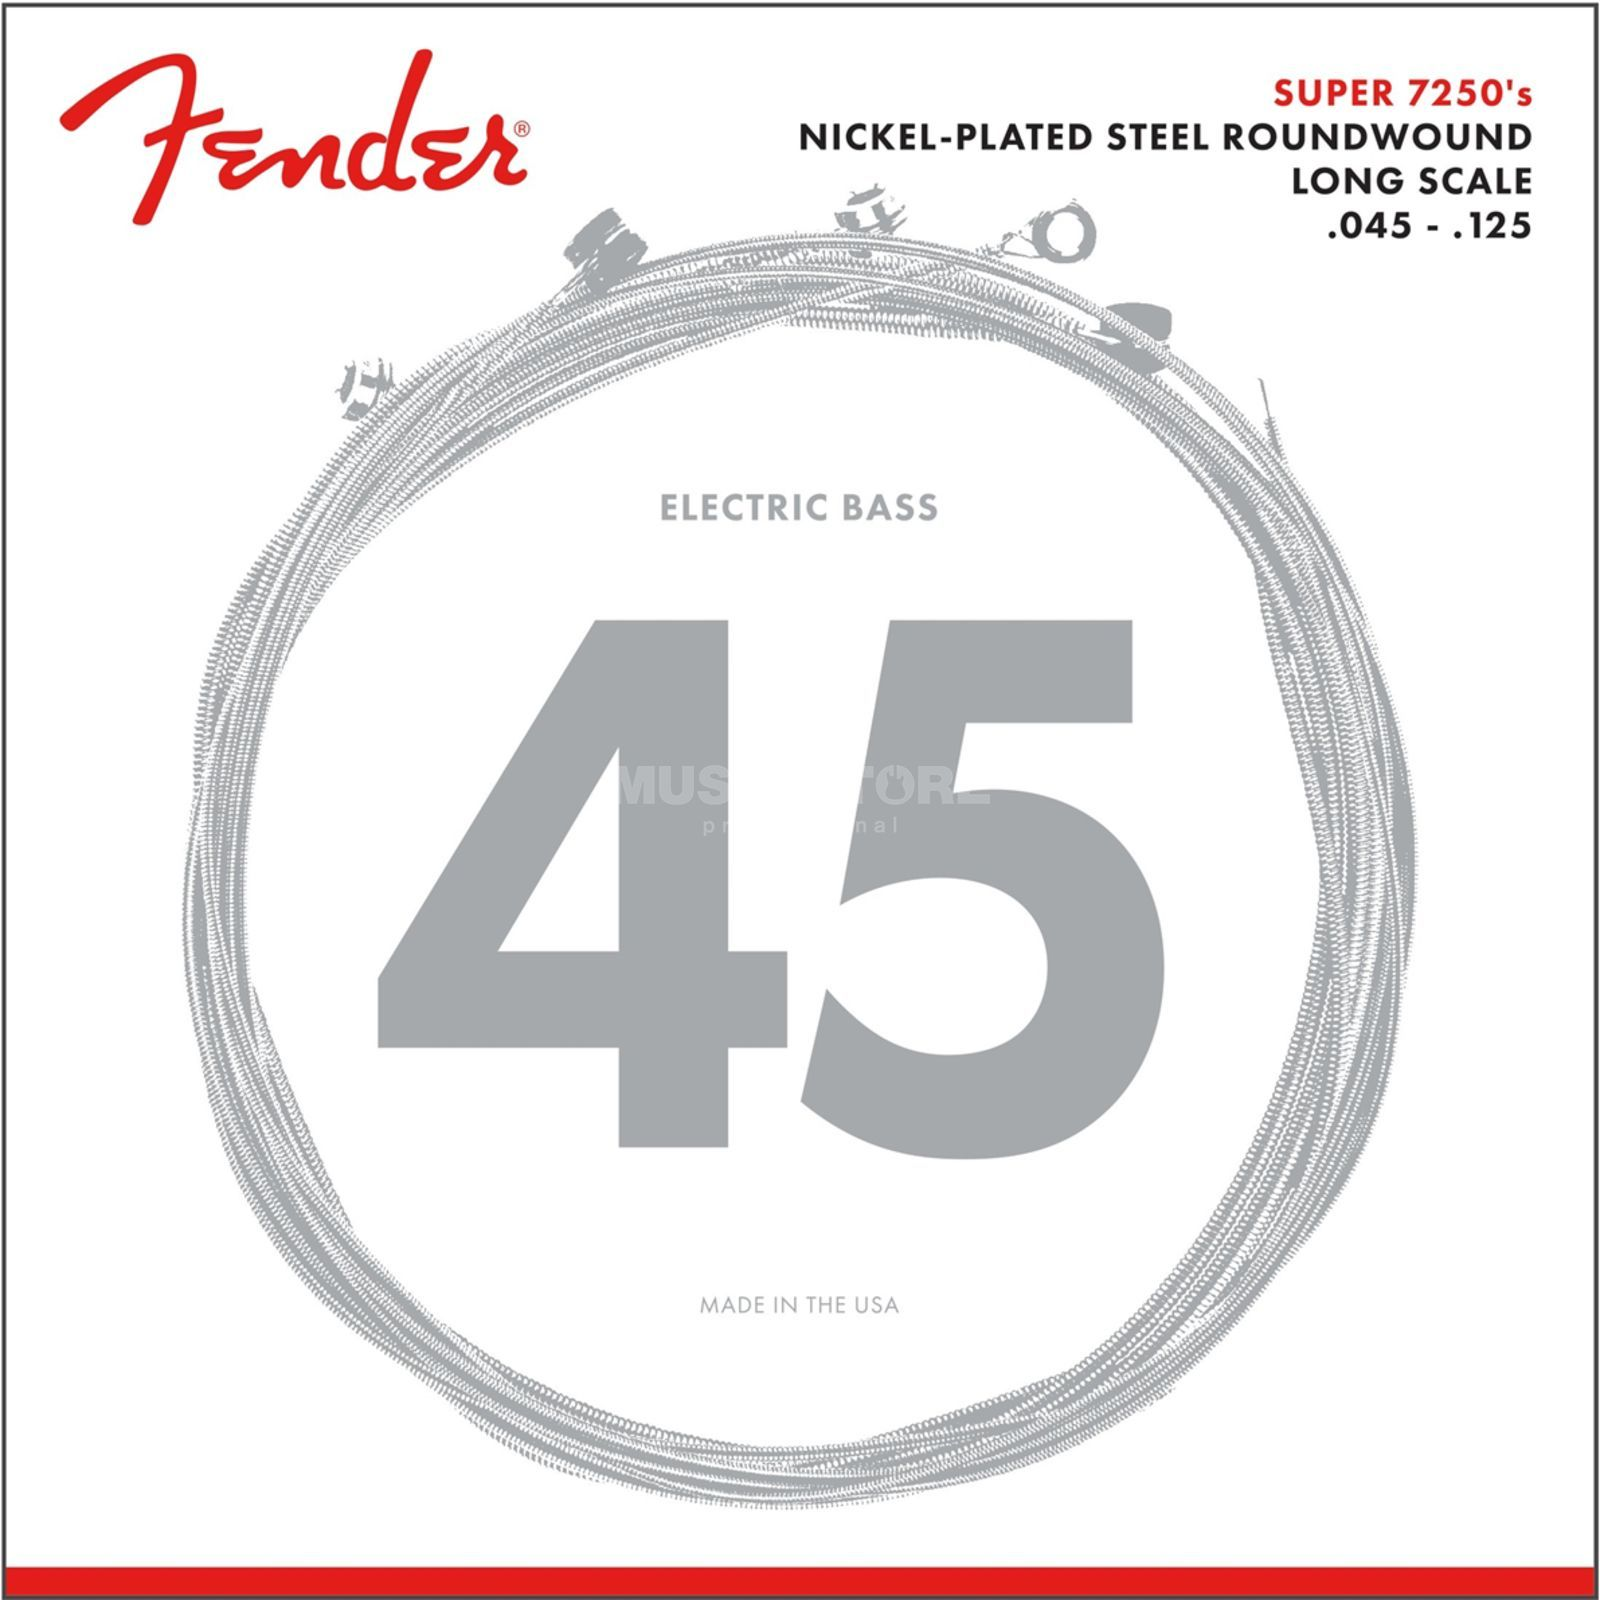 Fender Strings Super 7250 5M 45-125 Nickel Plated Steel, Roundwound, Longscale Immagine prodotto